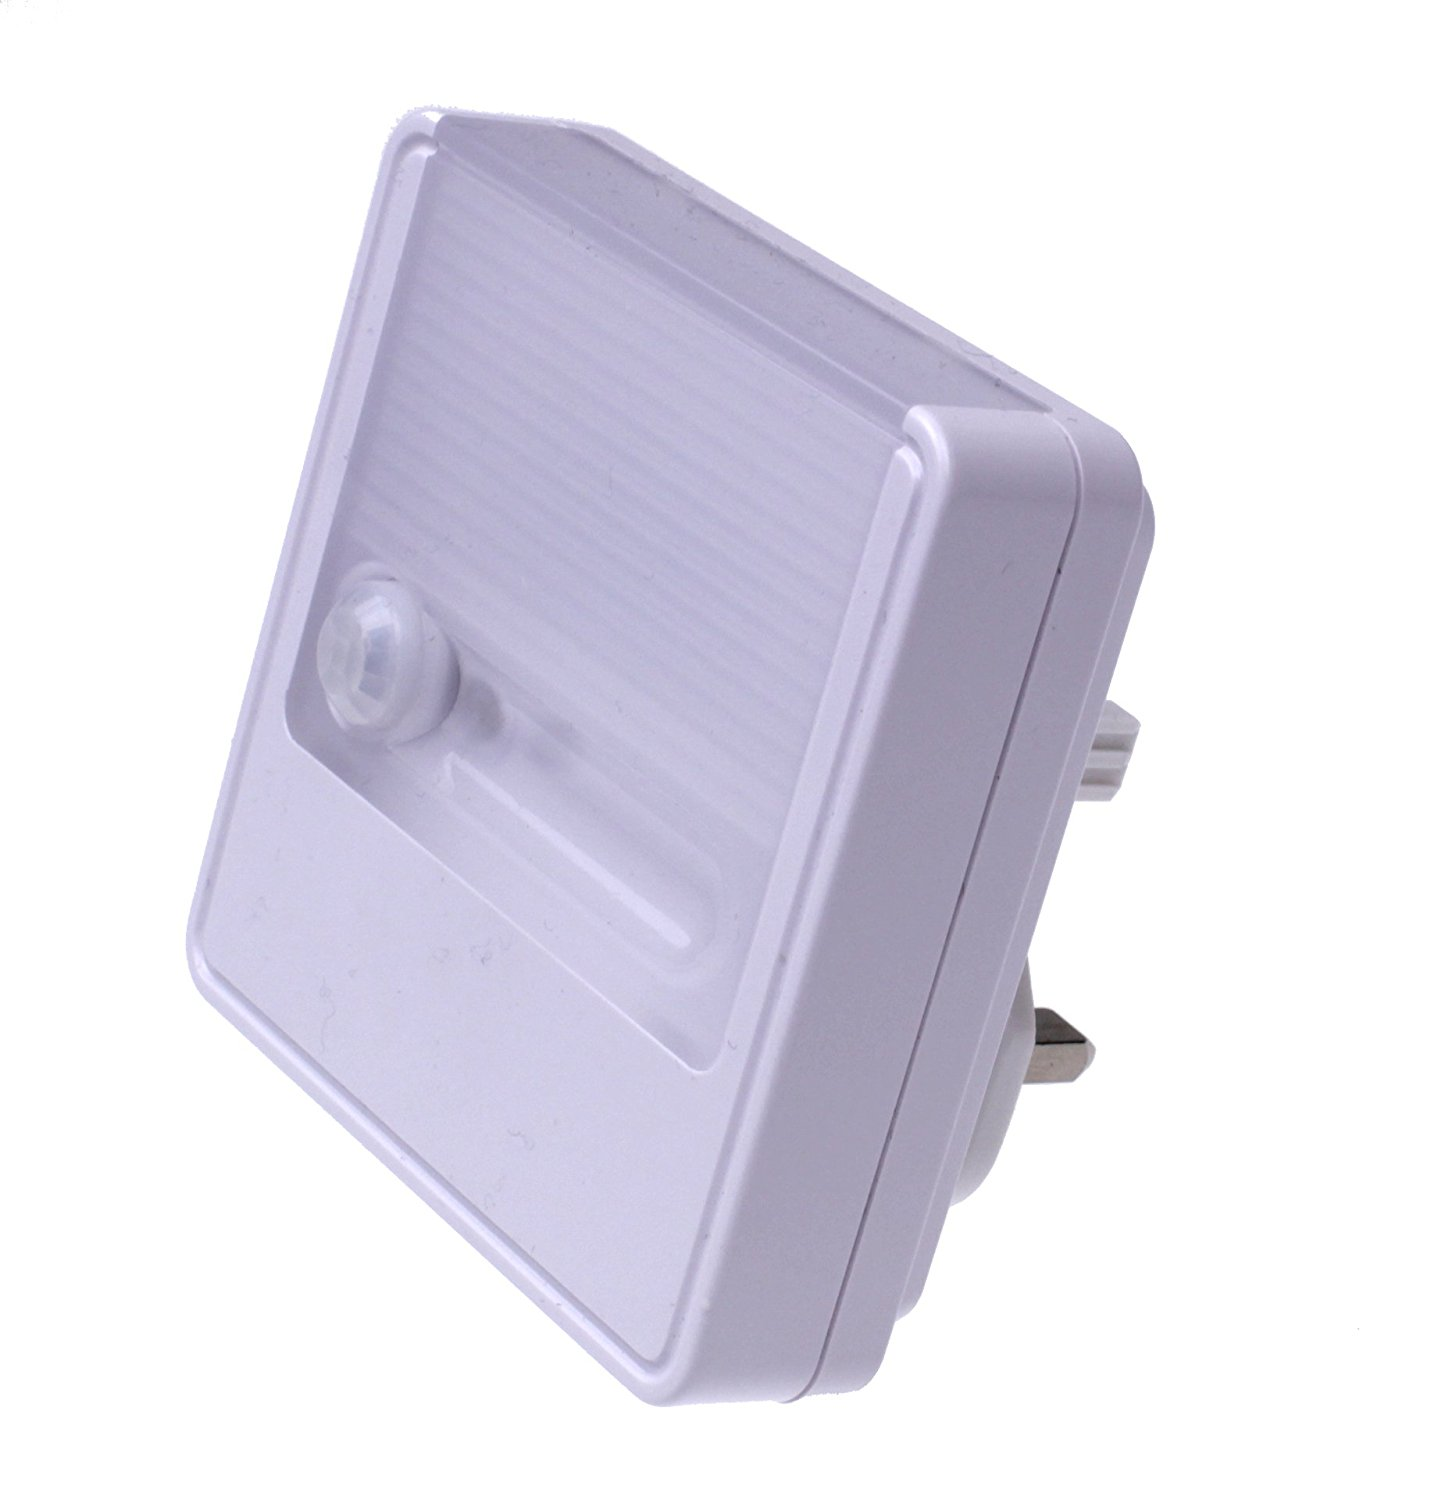 Ansmann LED Guide Nightlight with Twilight and Motion Sensors